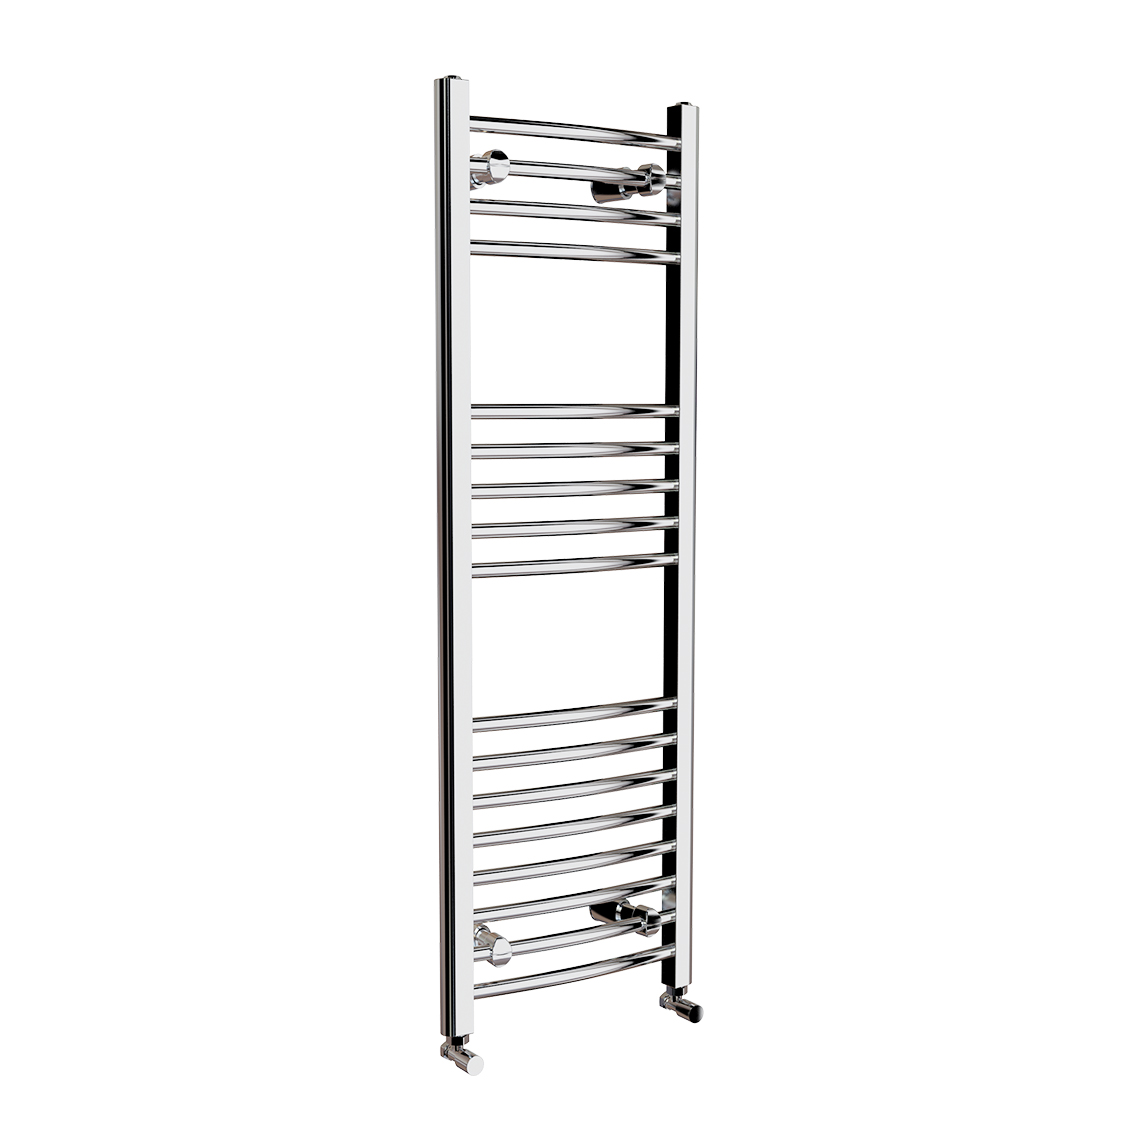 Natasha ladder rail straight modern electric towel radiator in chrome - 650x400mm Chrome Straight Rail Ladder Towel Radiator Natasha